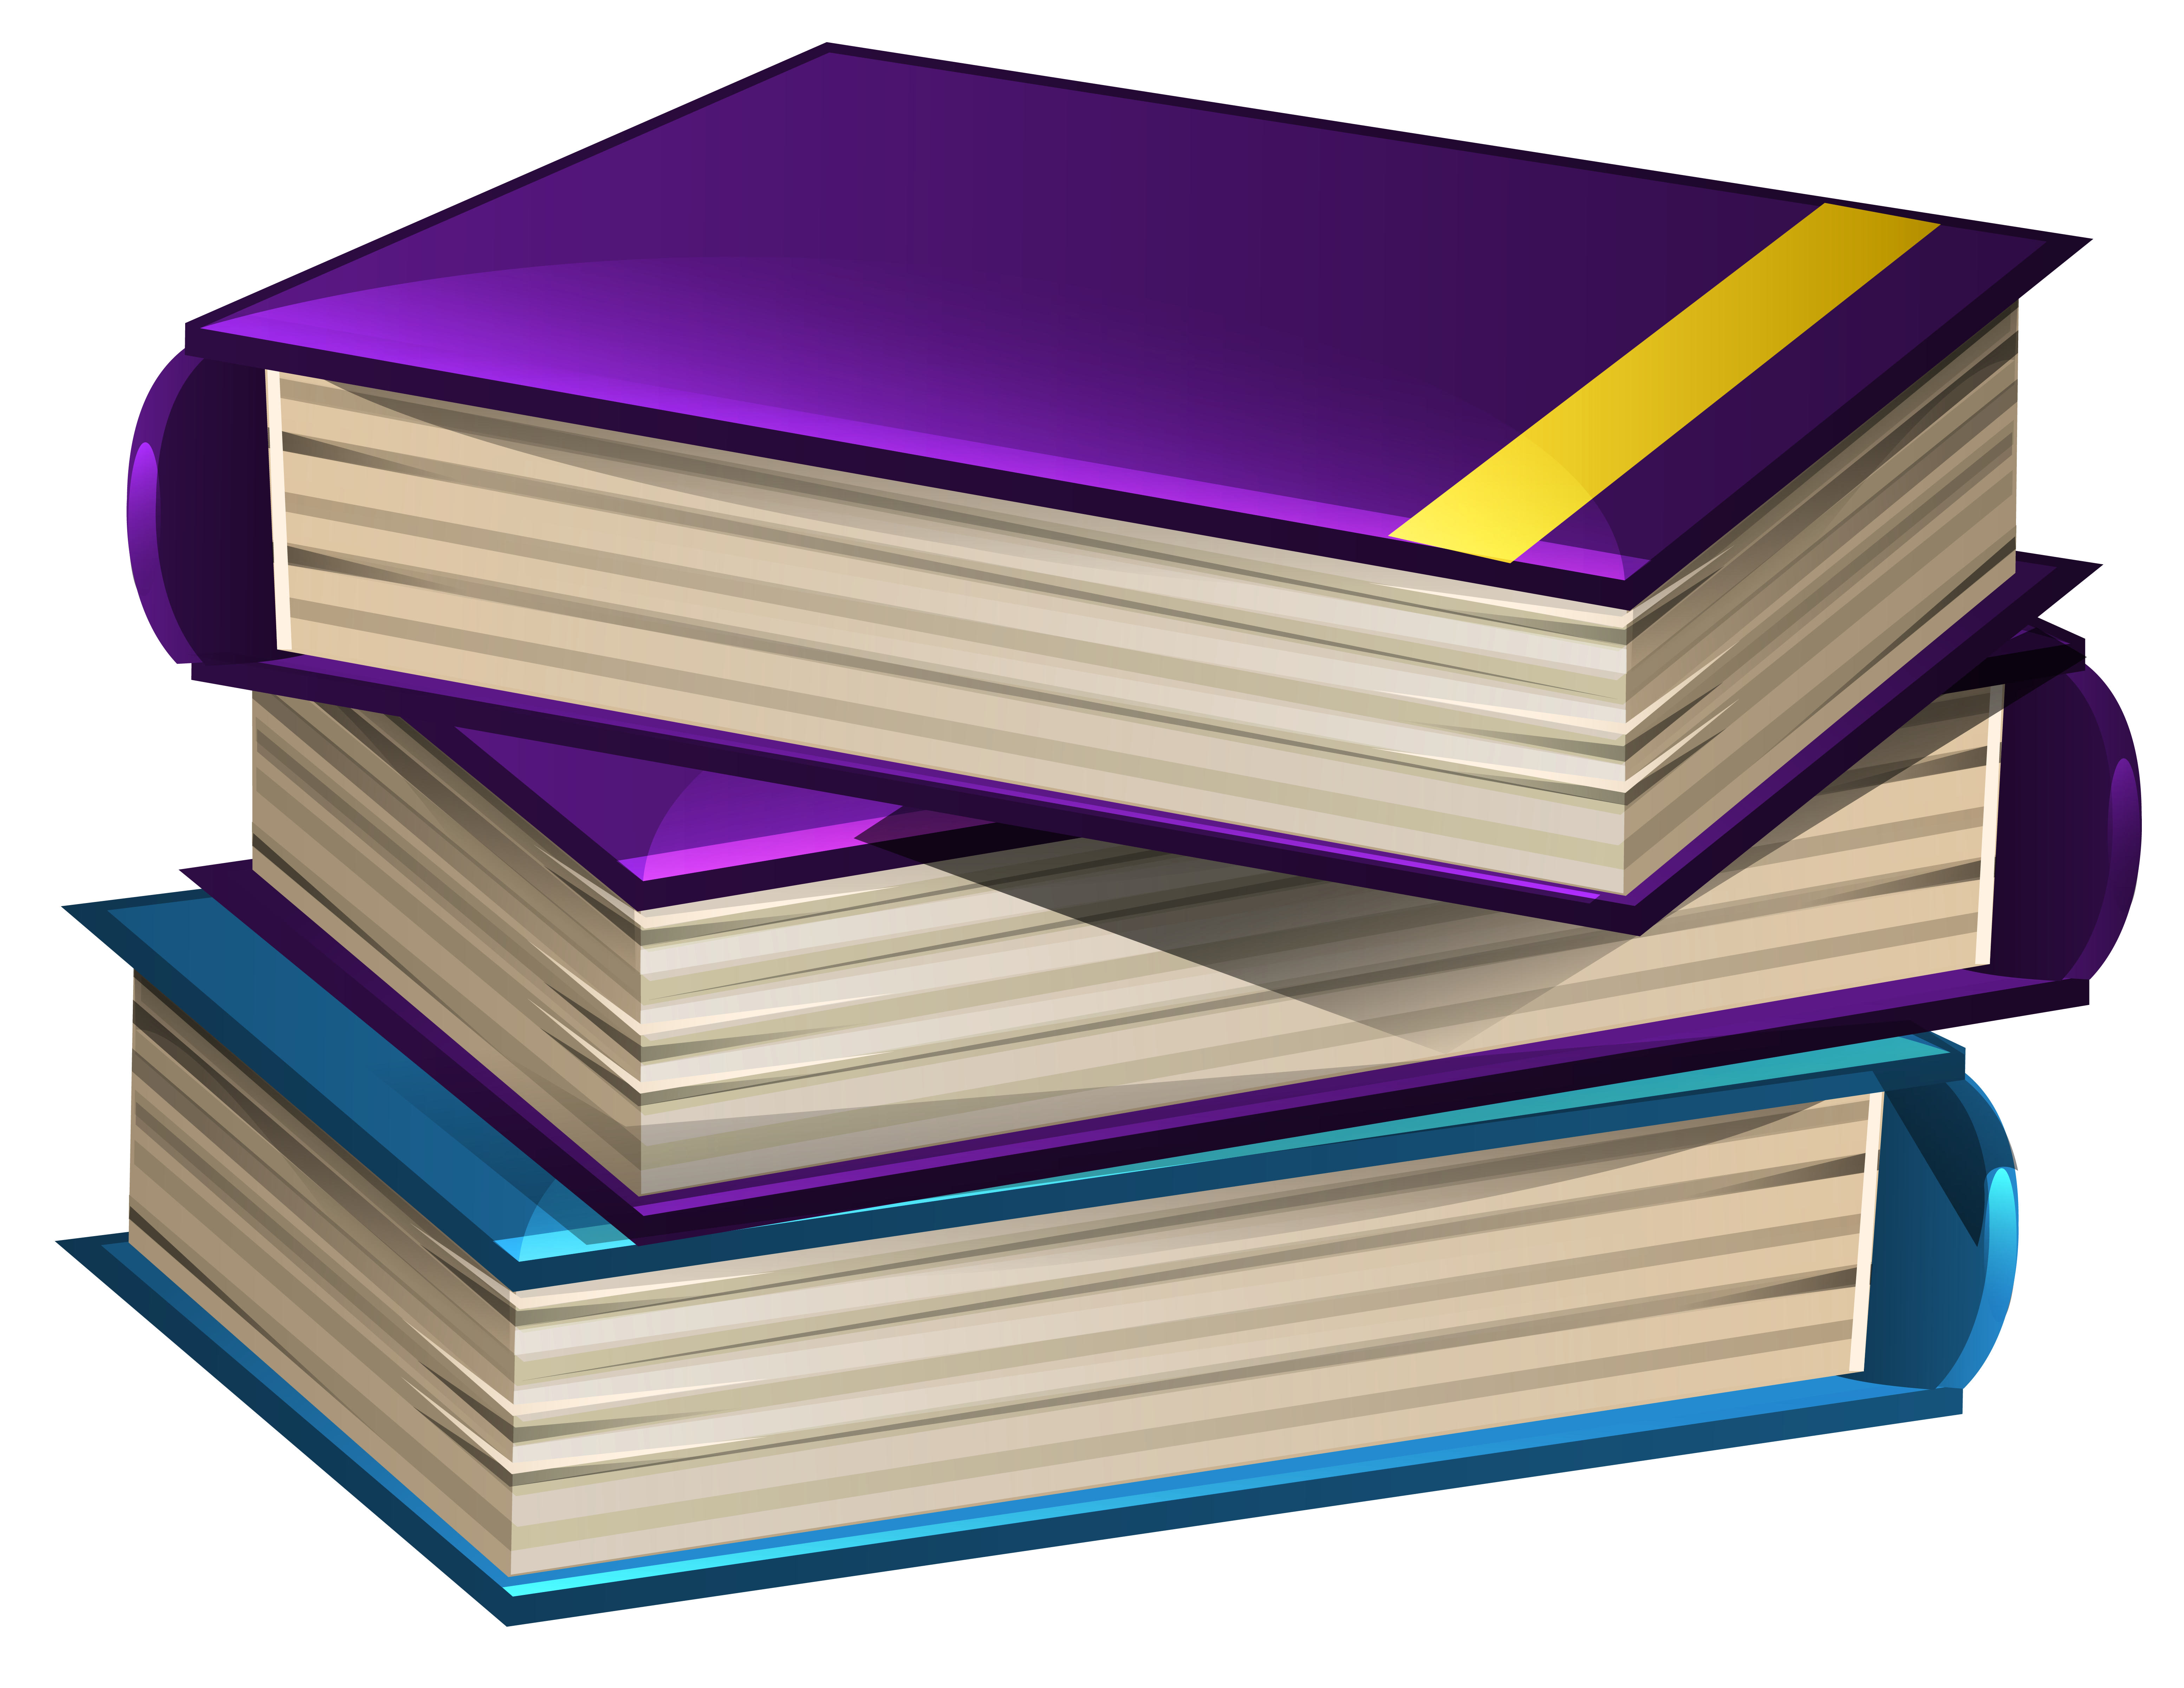 School book png. Books clipart image gallery